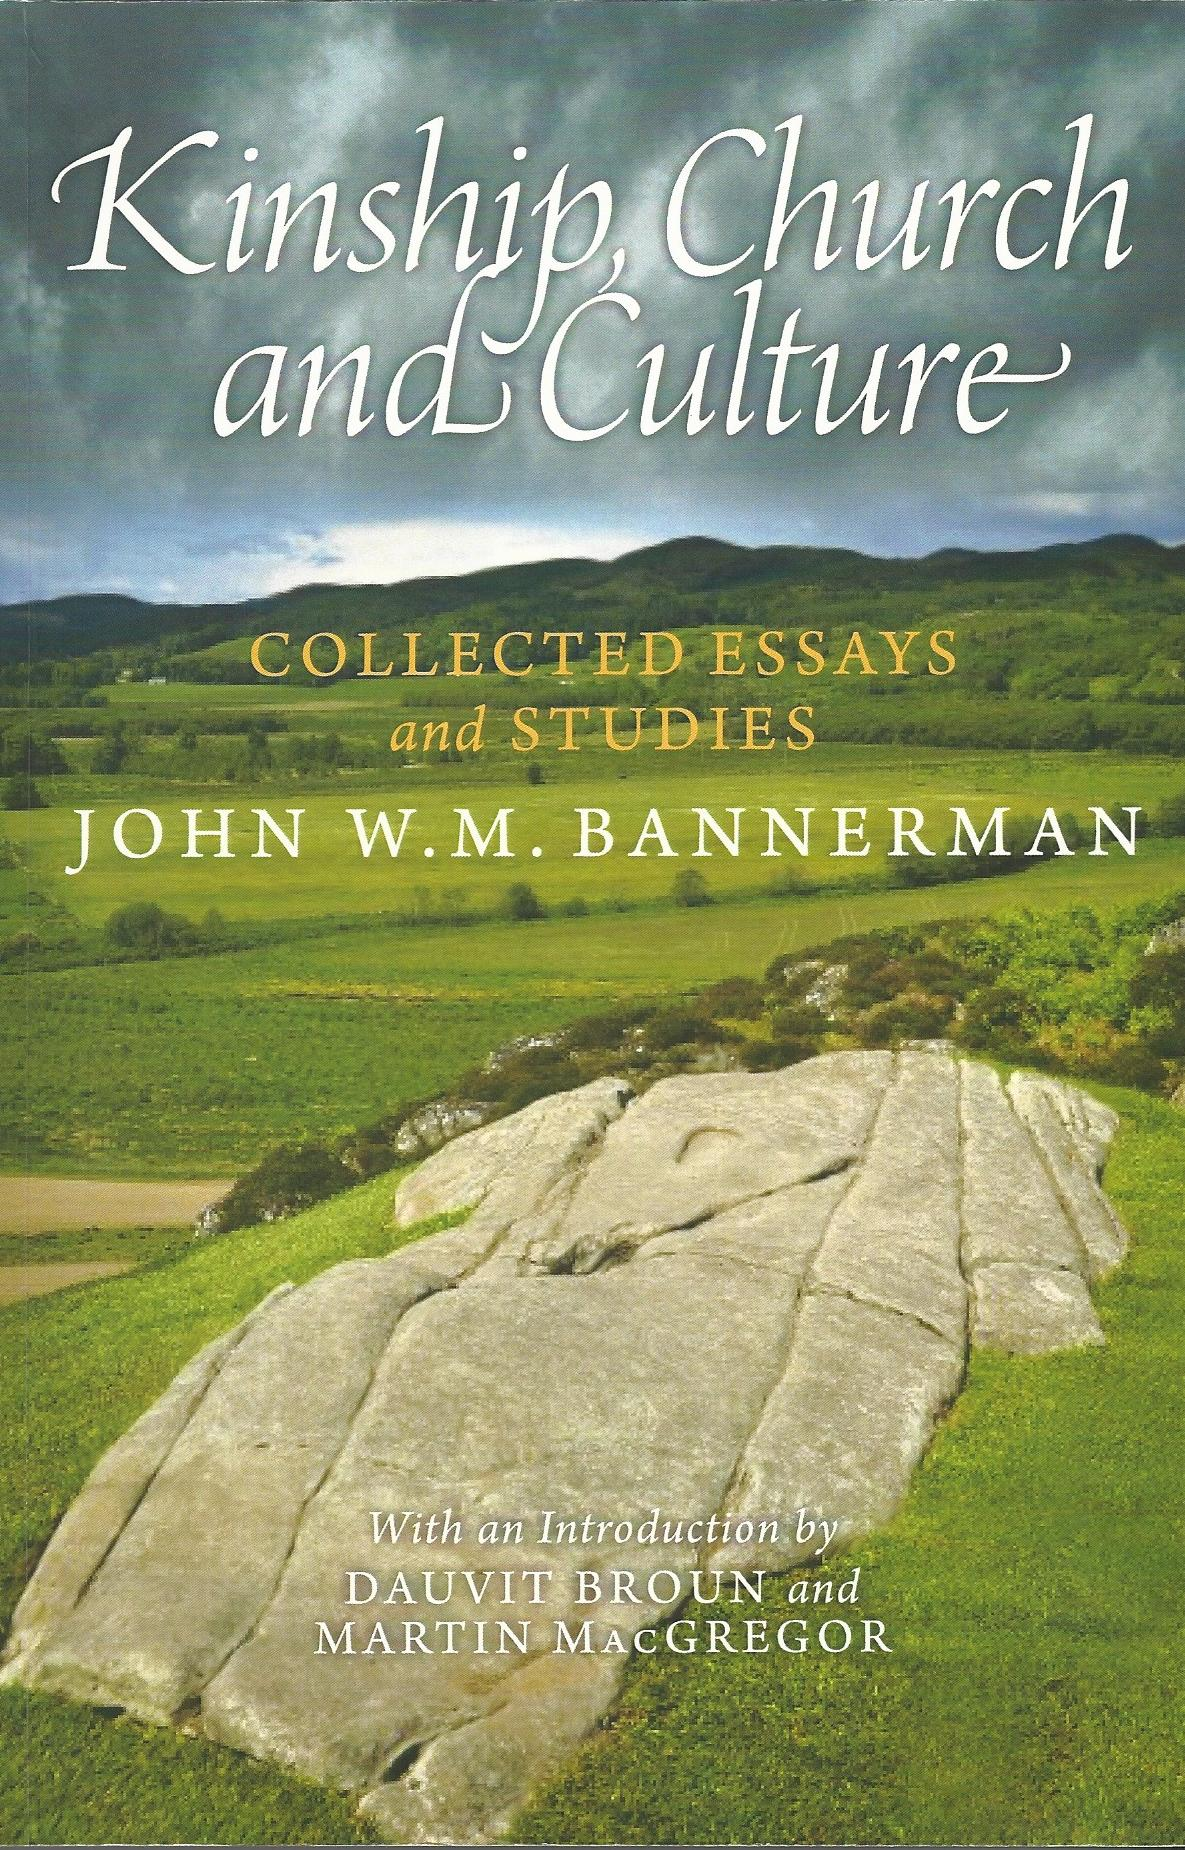 Image for Kinship, Church and Culture: Collected Essays and Studies by John W. M. Bannerman